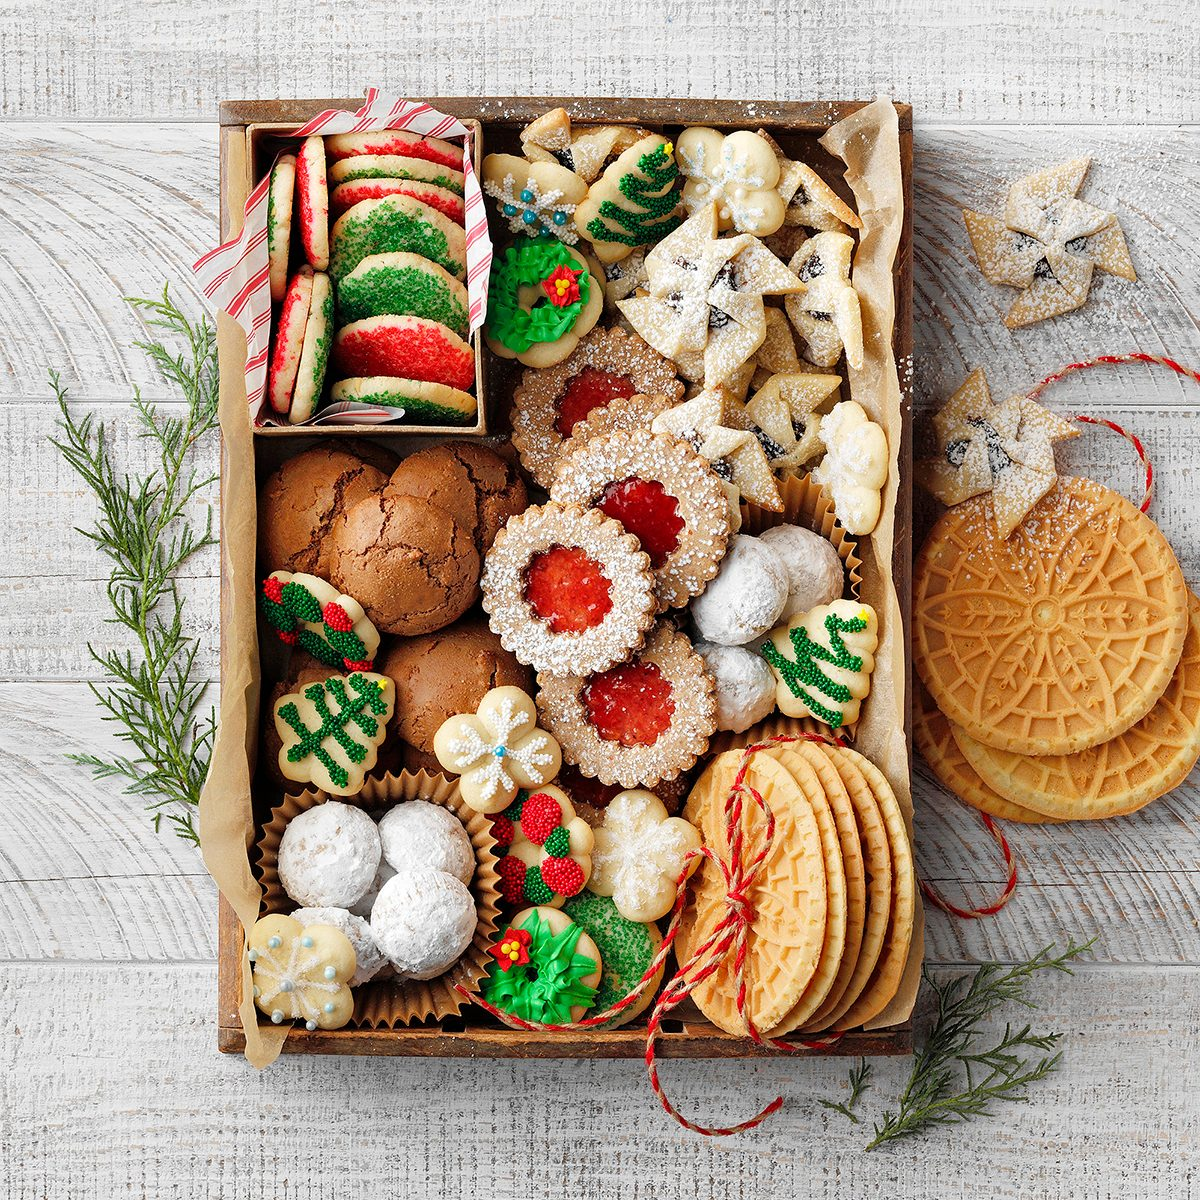 How To Store Christmas Cookies To Keep Them Fresh All December